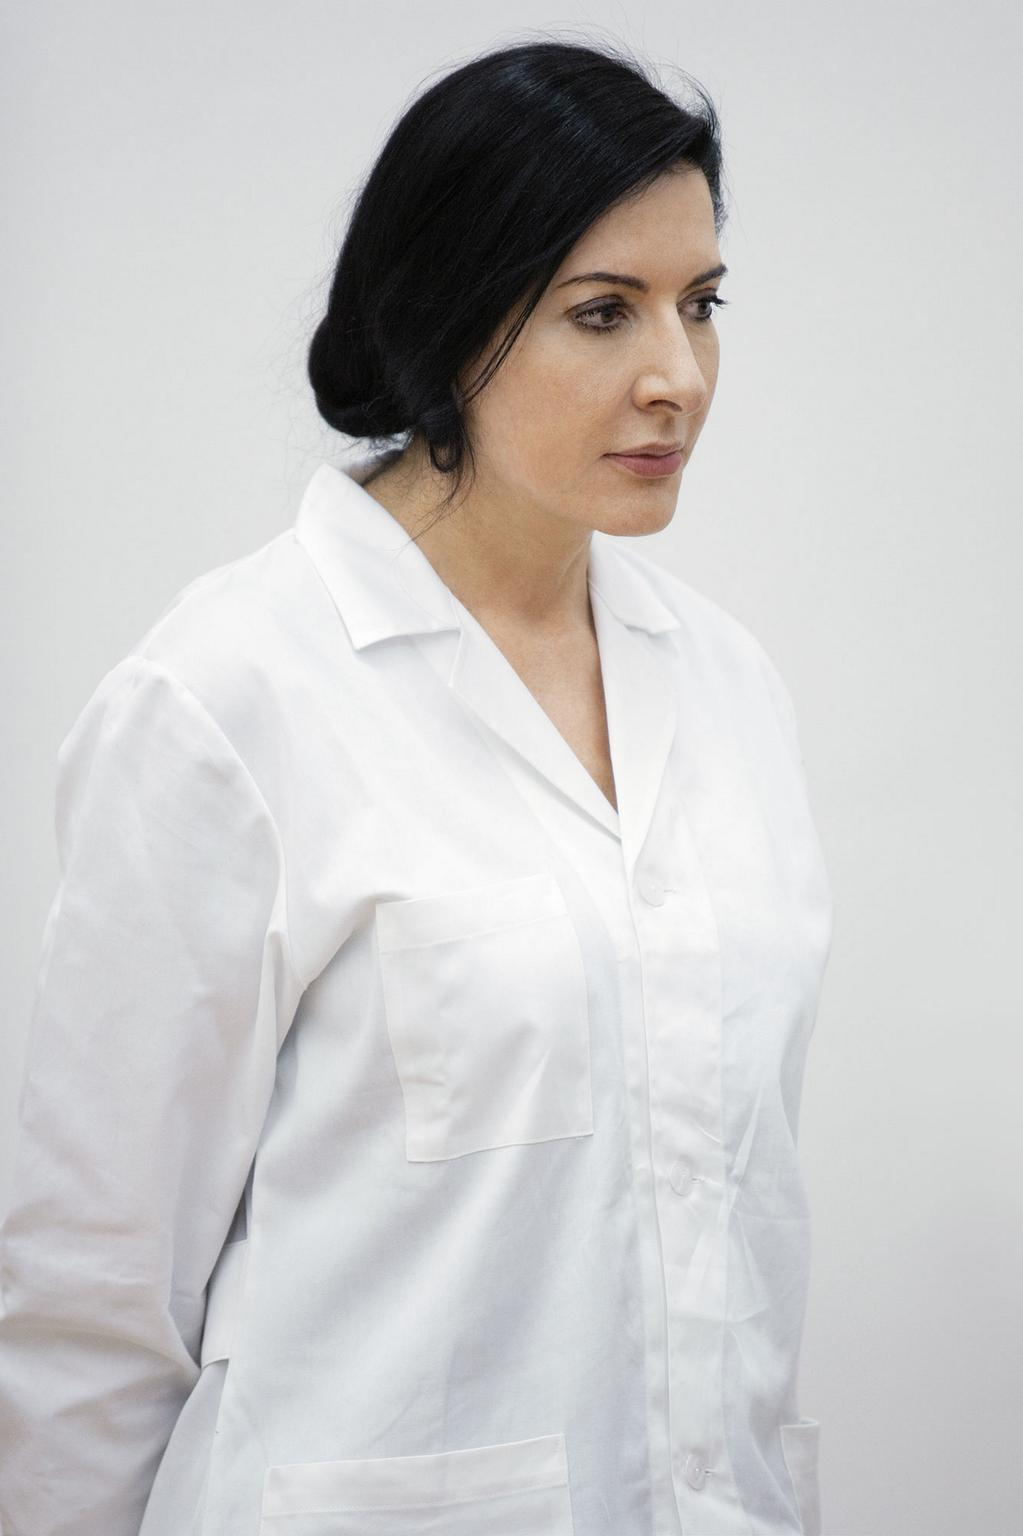 Marina Abramovic discusses her new show at @SeanKellyNY: http://t.co/4DL7DVoqAs http://t.co/Z0TFNGGjJG